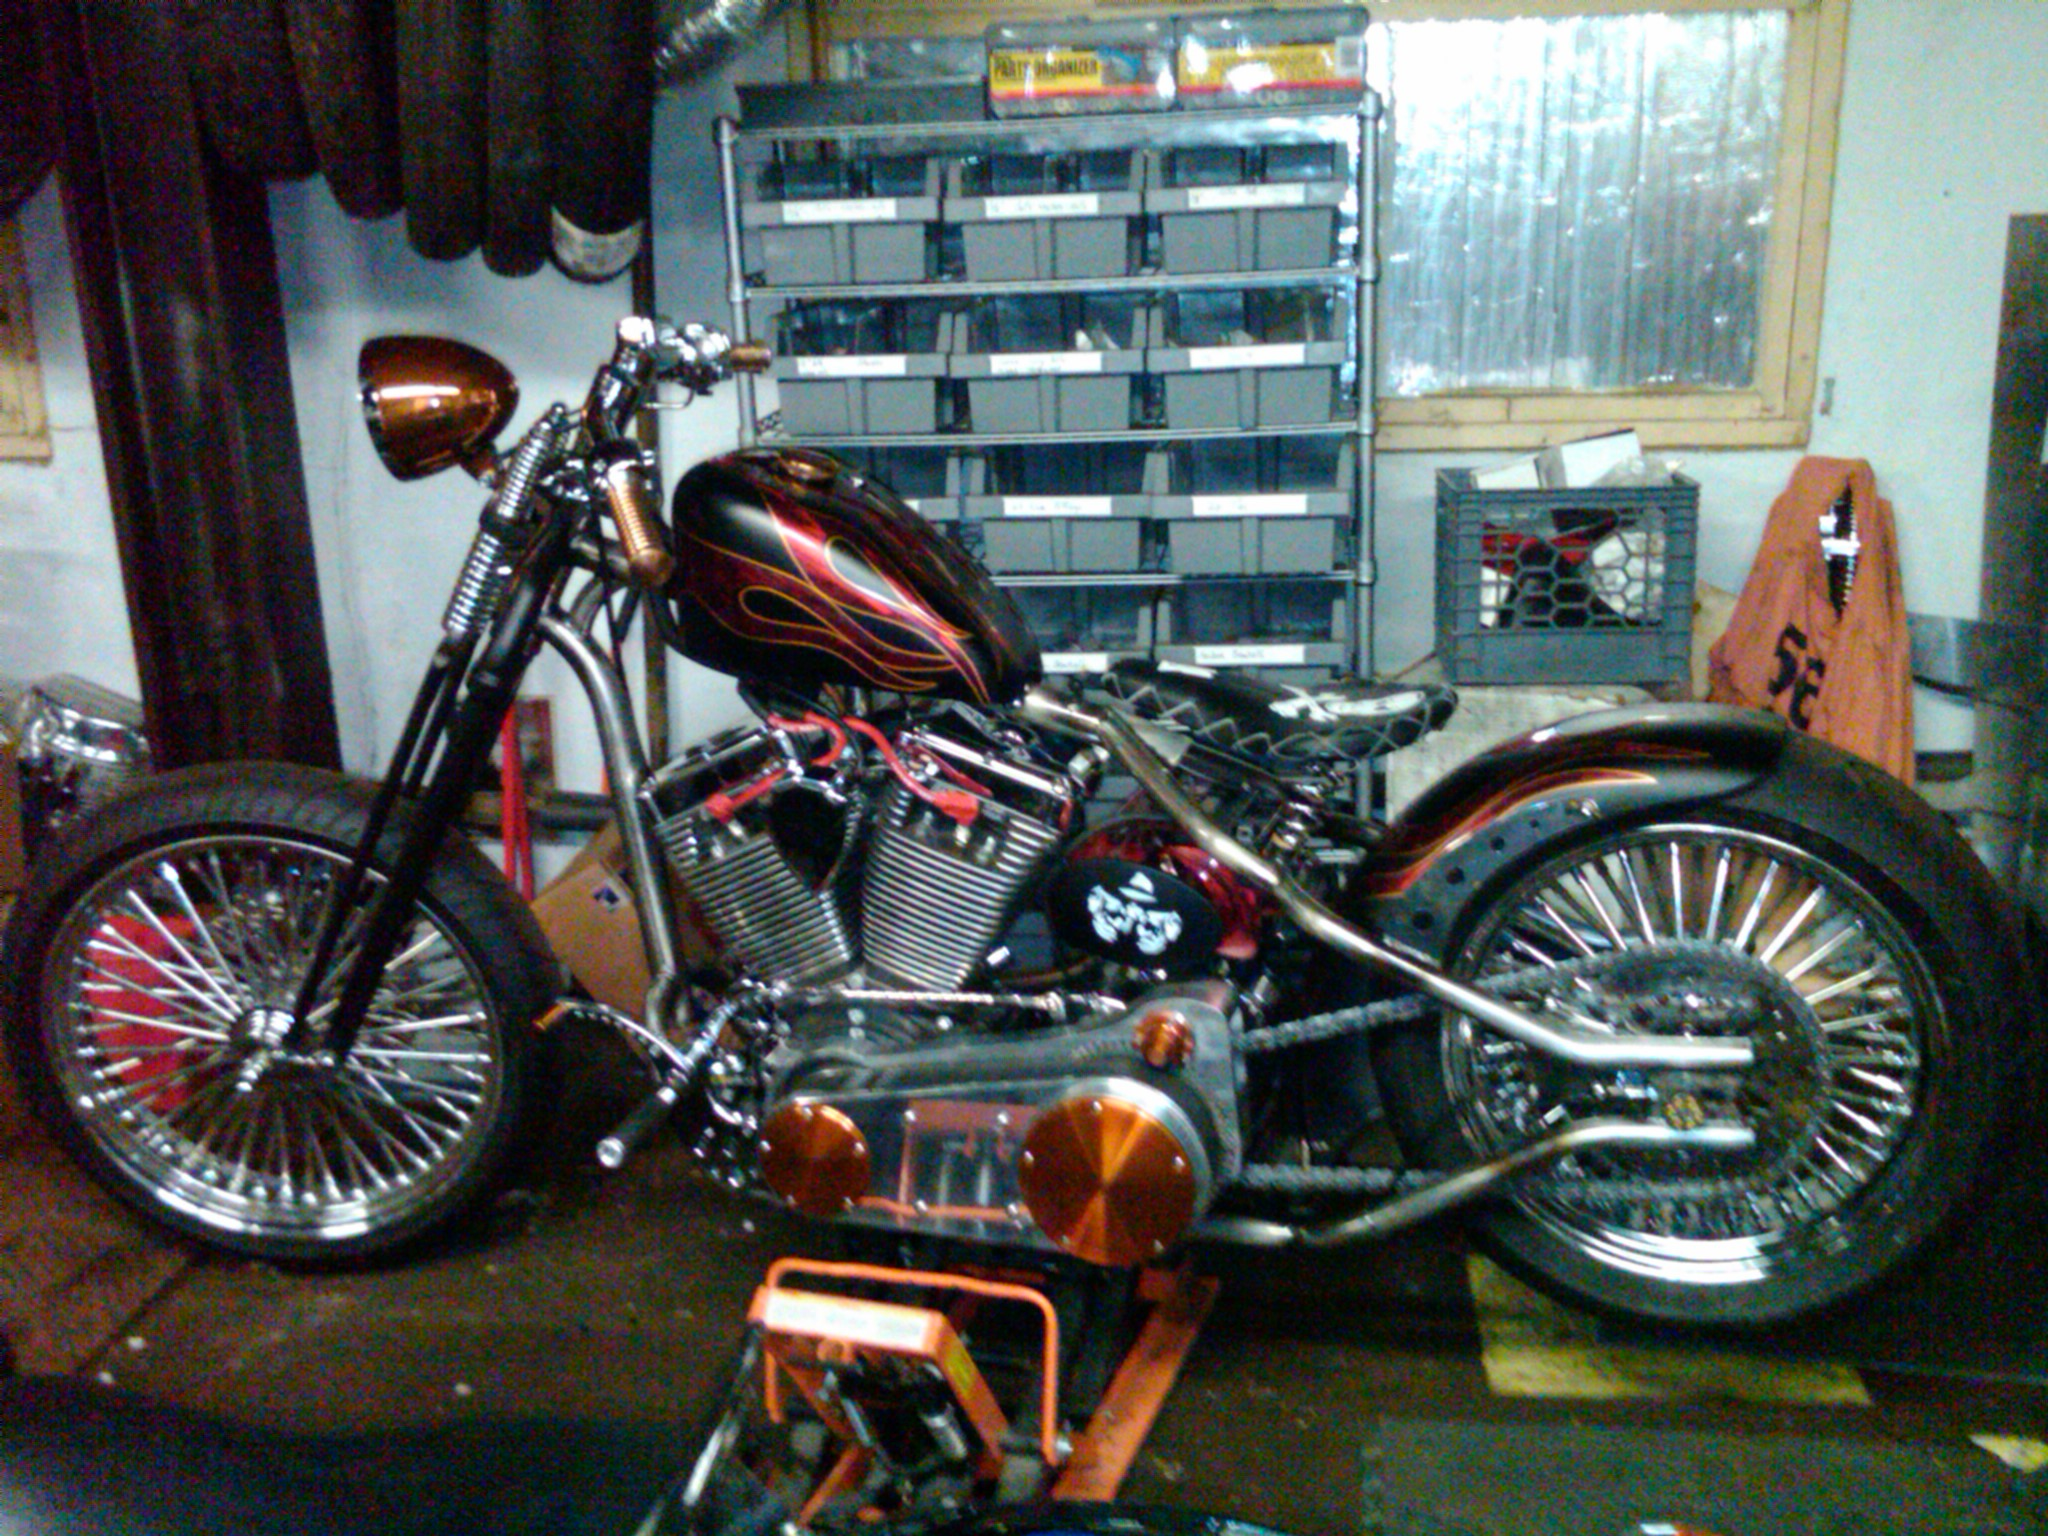 custom bobber motorcycles for sale | What's Hot with Bobber and